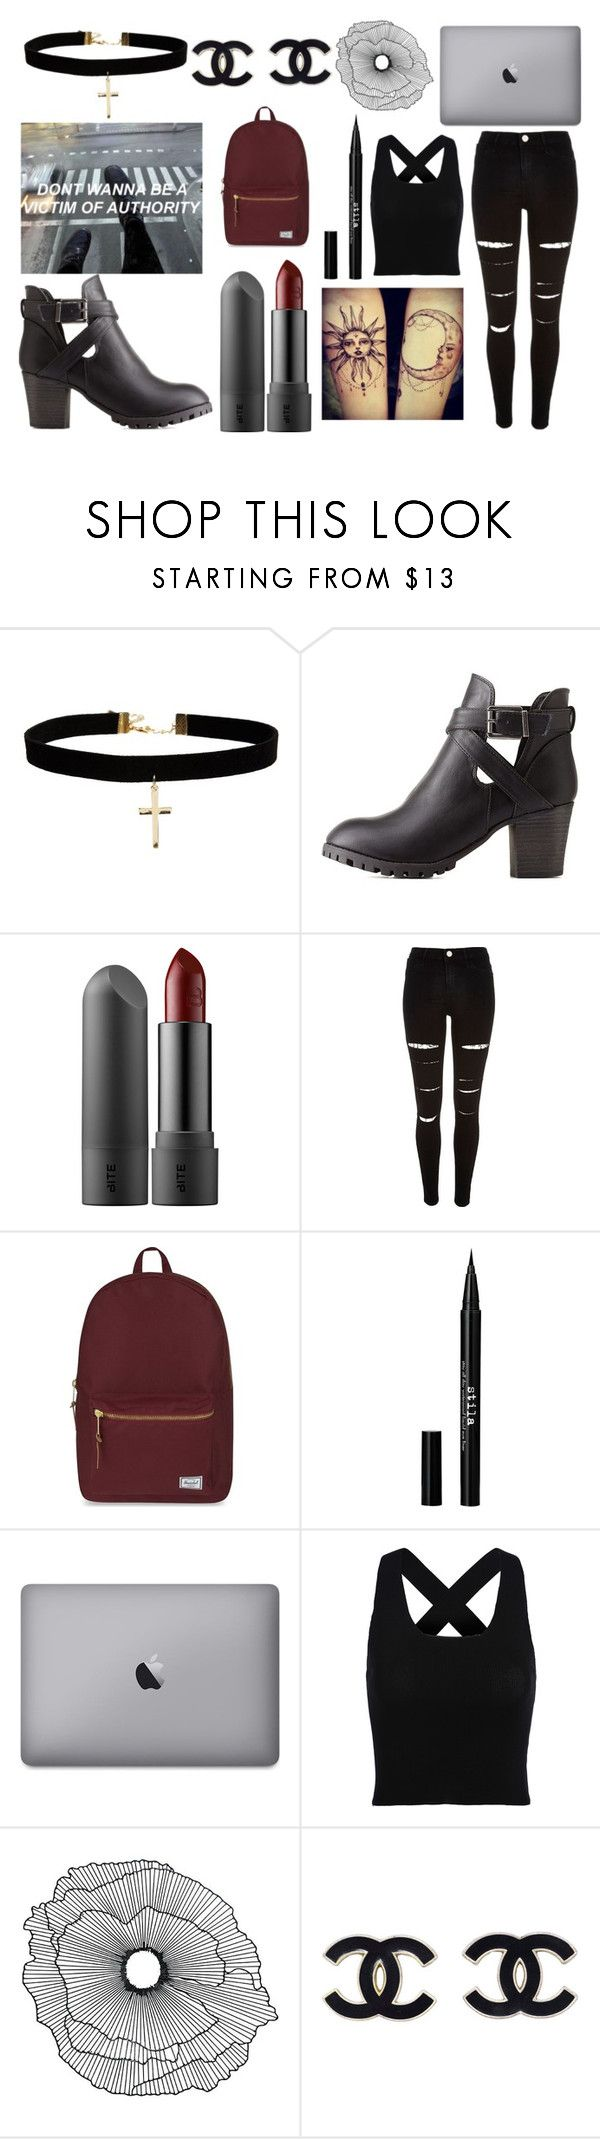 """""""Don't Wanna Be A Victim Of Authority"""" by anajeps ❤ liked on Polyvore featuring ASOS, Charlotte Russe, River Island, Herschel Supply Co., Stila, Home Decorators Collection, black, Punk, 5sos and fashian"""